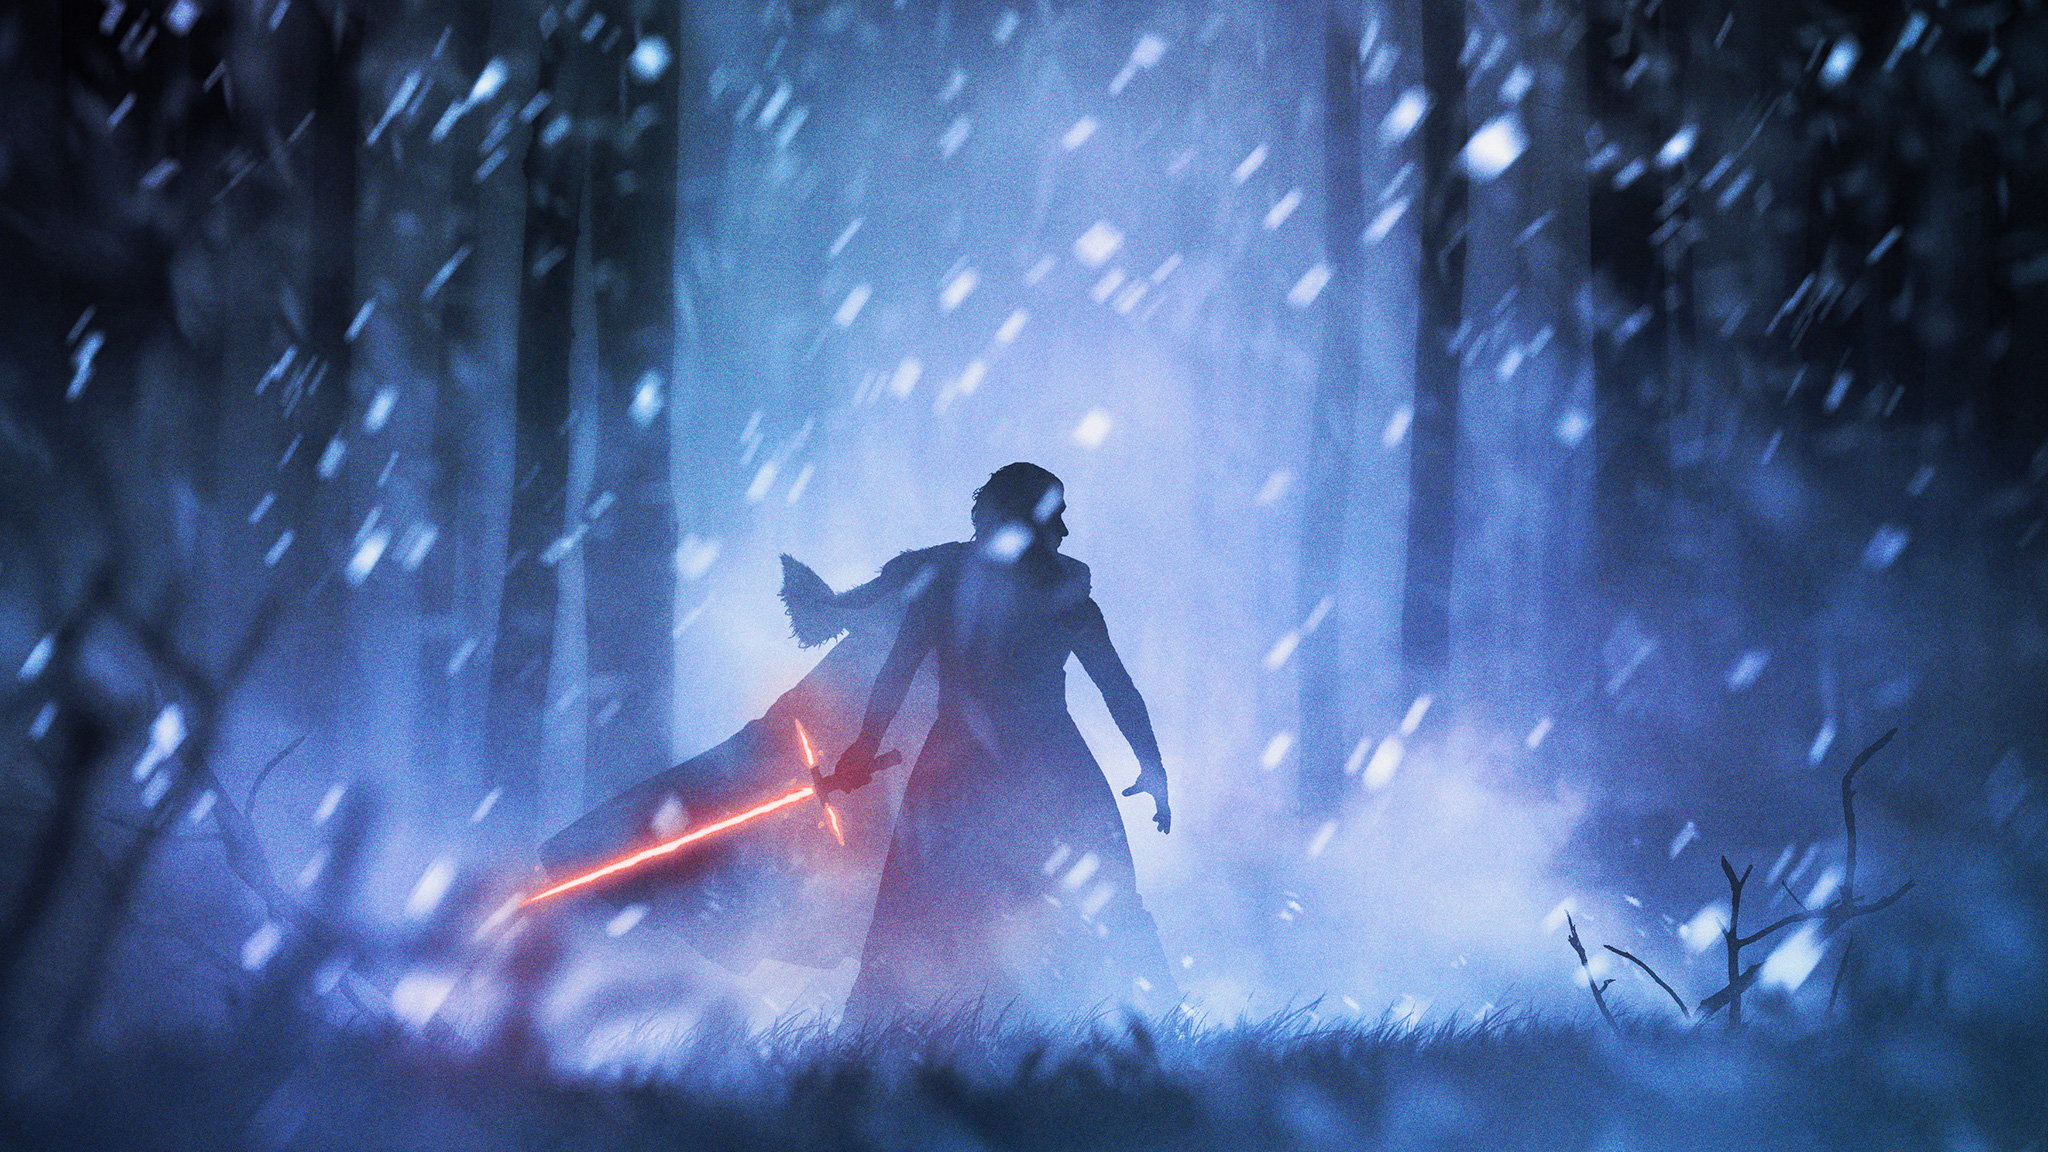 Kylo Ren Star Wars Digital Art Hd Artist 4k Wallpapers Images Backgrounds Photos And Pictures